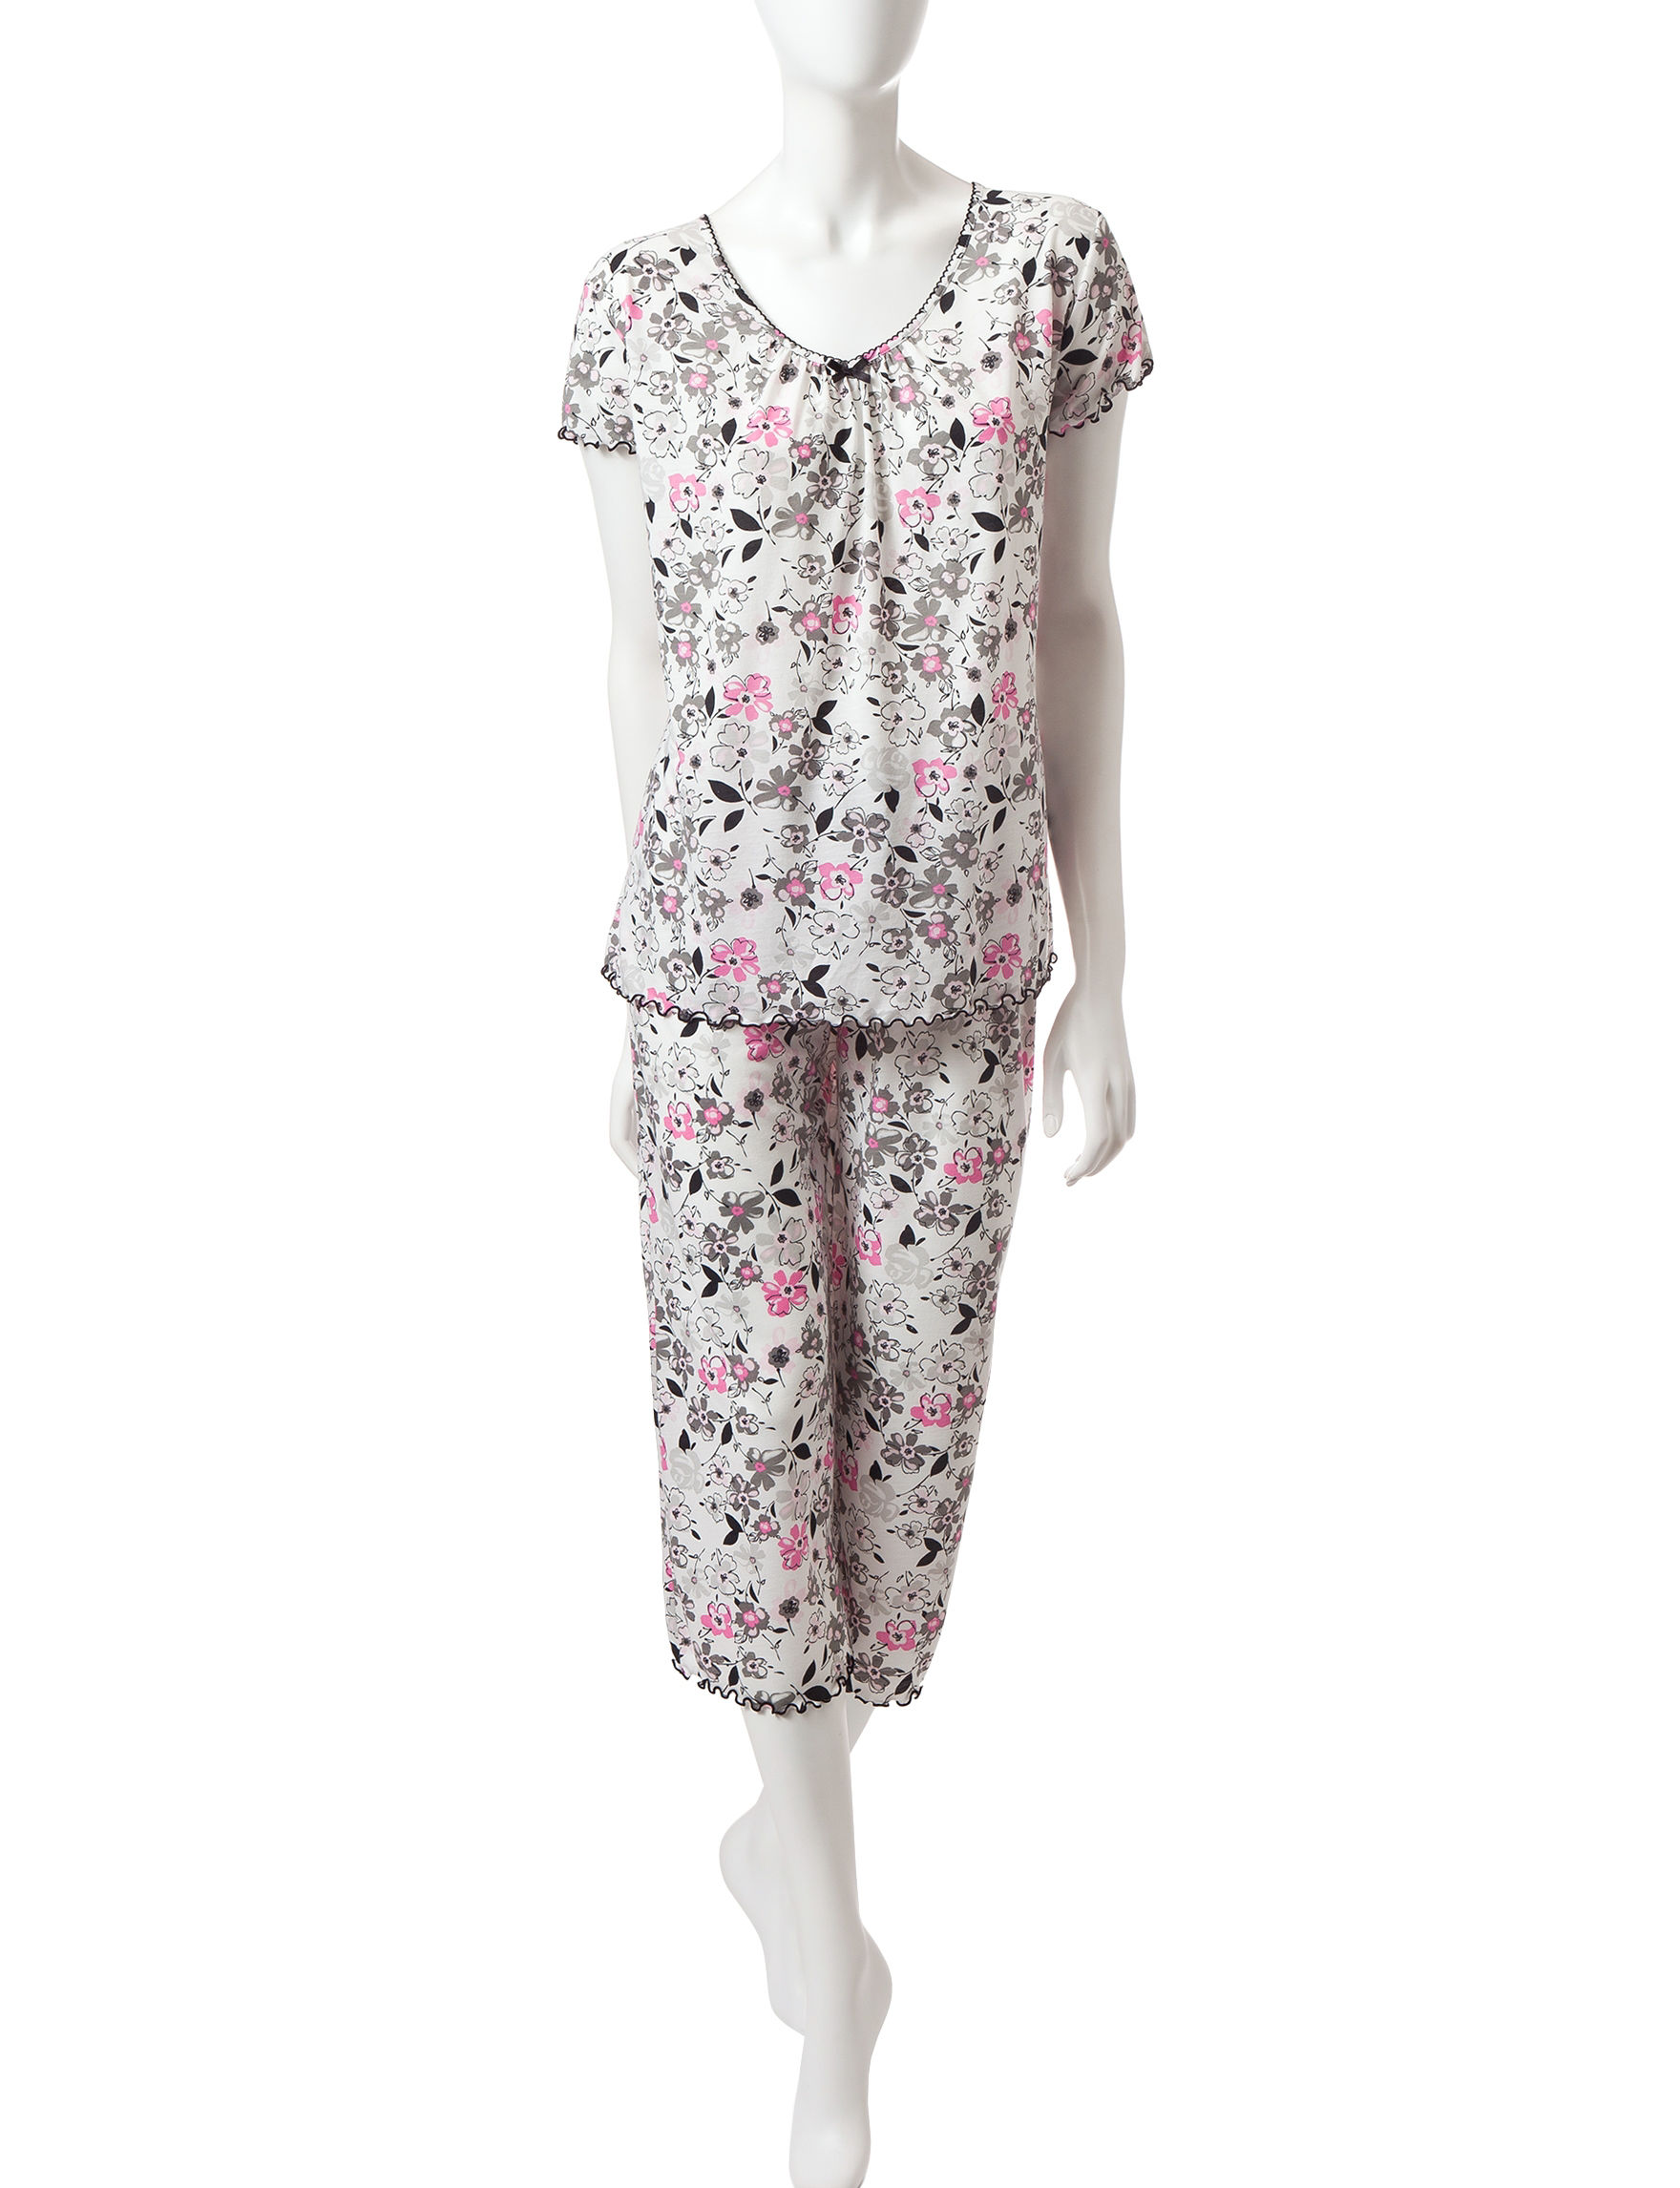 Jaclyn Intimates Black / White Pajama Sets